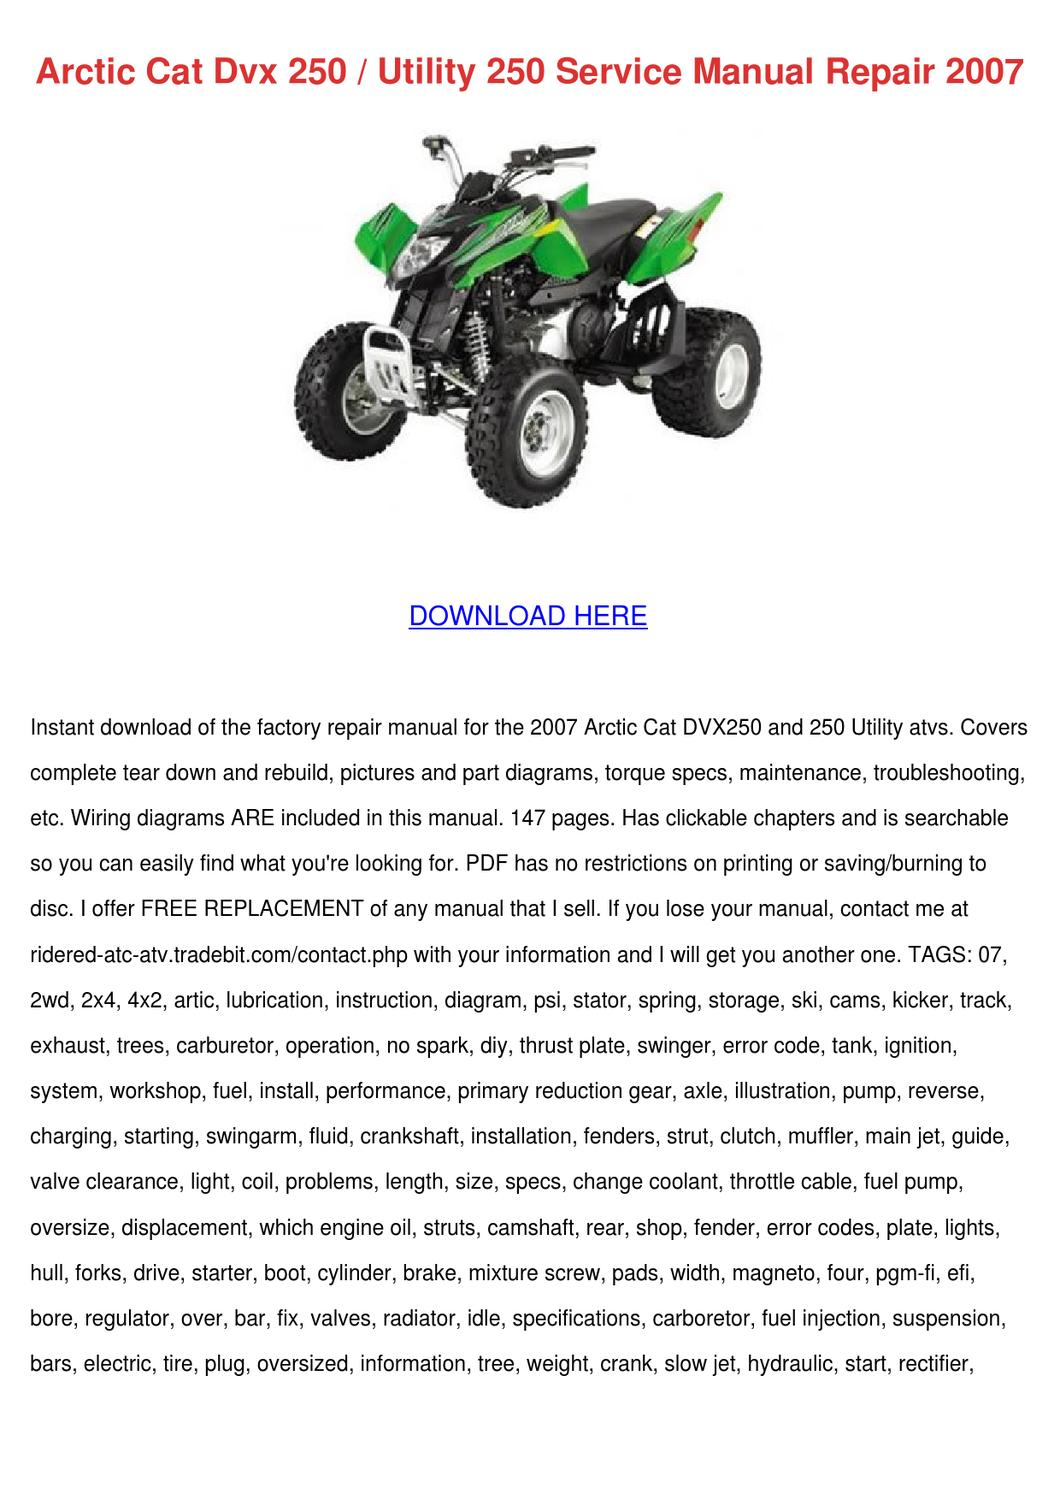 Arctic Cat Dvx 250 Utility 250 Service Manual By Sonia